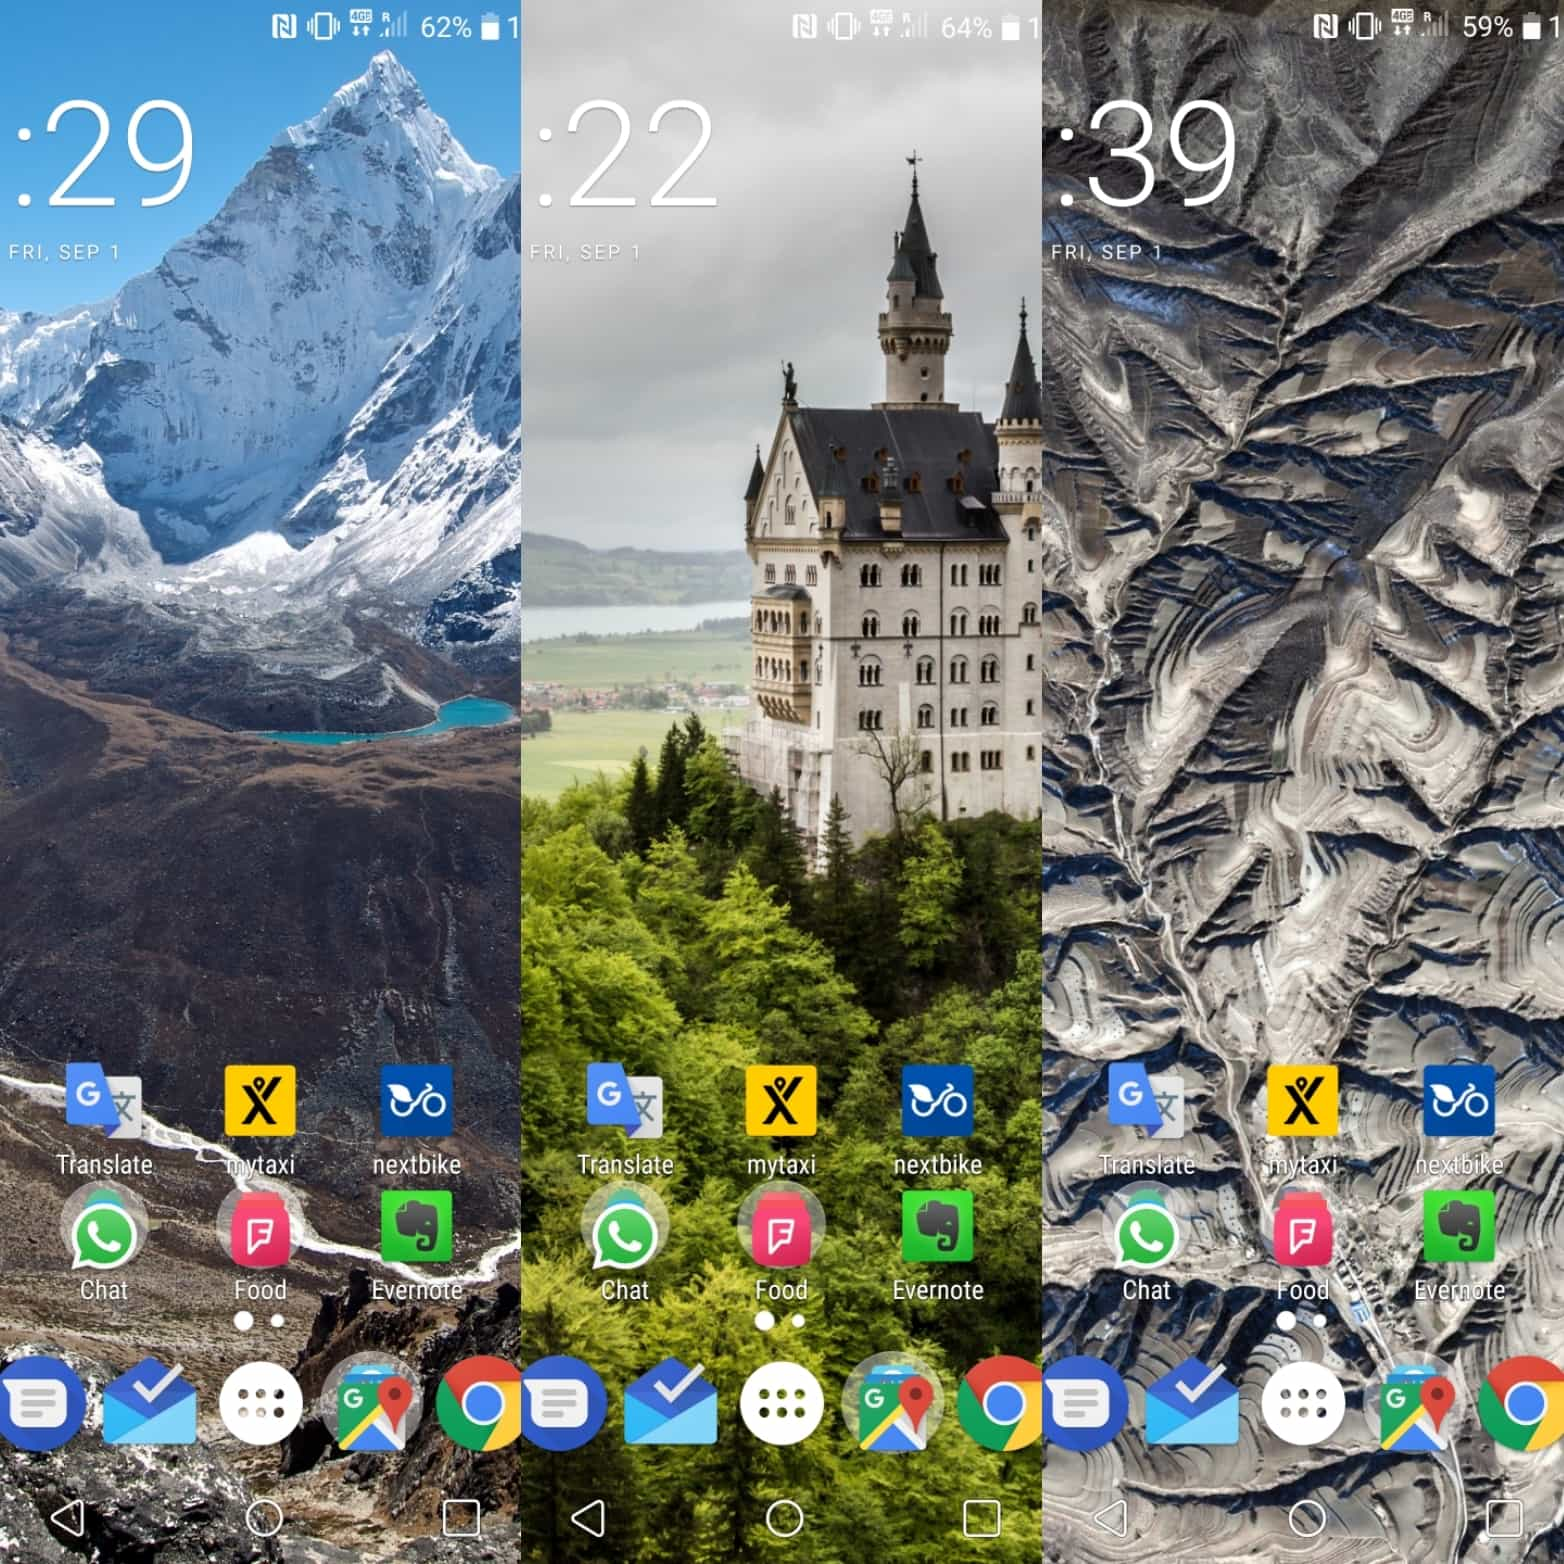 How to Change Your Wallpaper Automatically Everyday Using Google Wallpaper